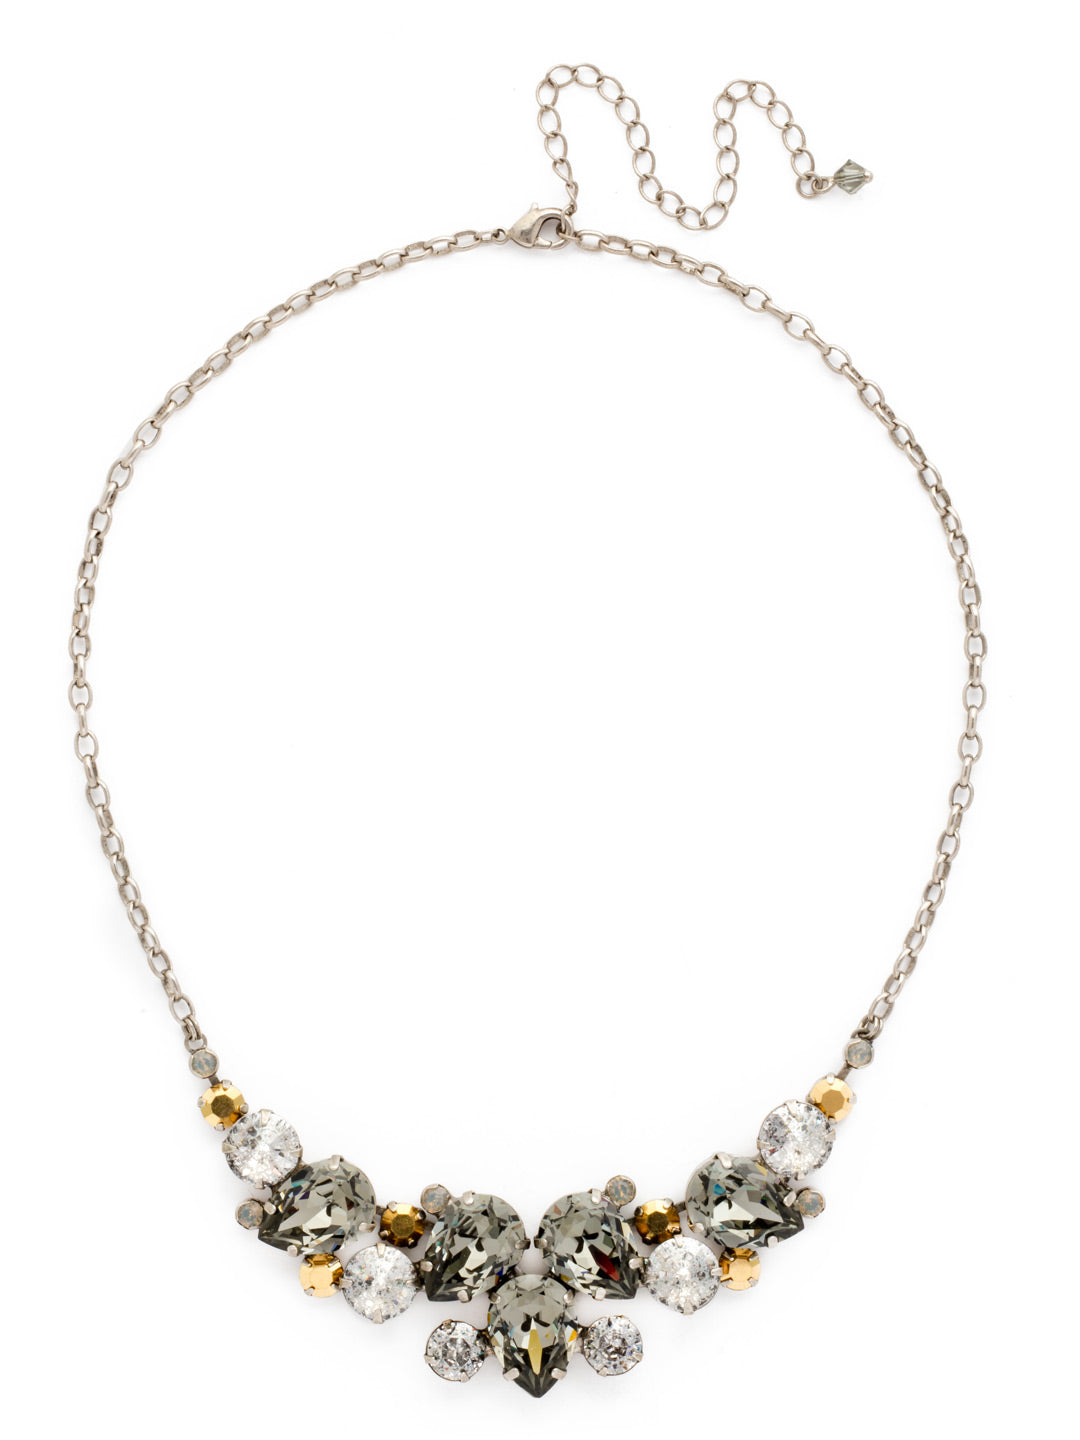 Nested Pear Statement Necklace - NDJ14ASGV